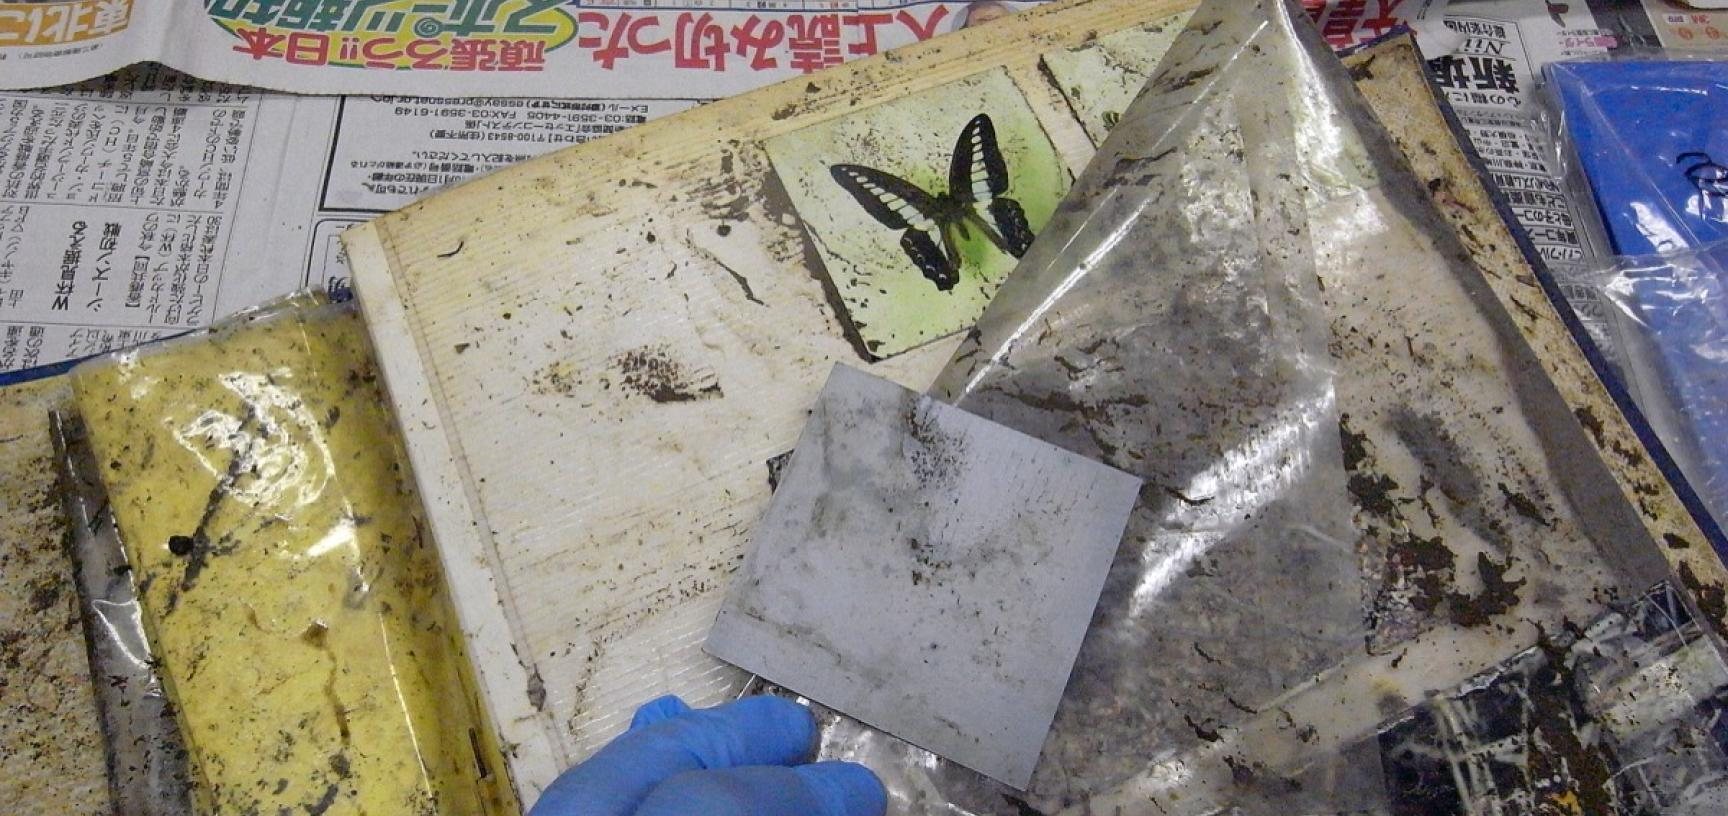 Removing prints from a damaged album. (Copyright RD3 Project/Rikuzentakata City Museum)